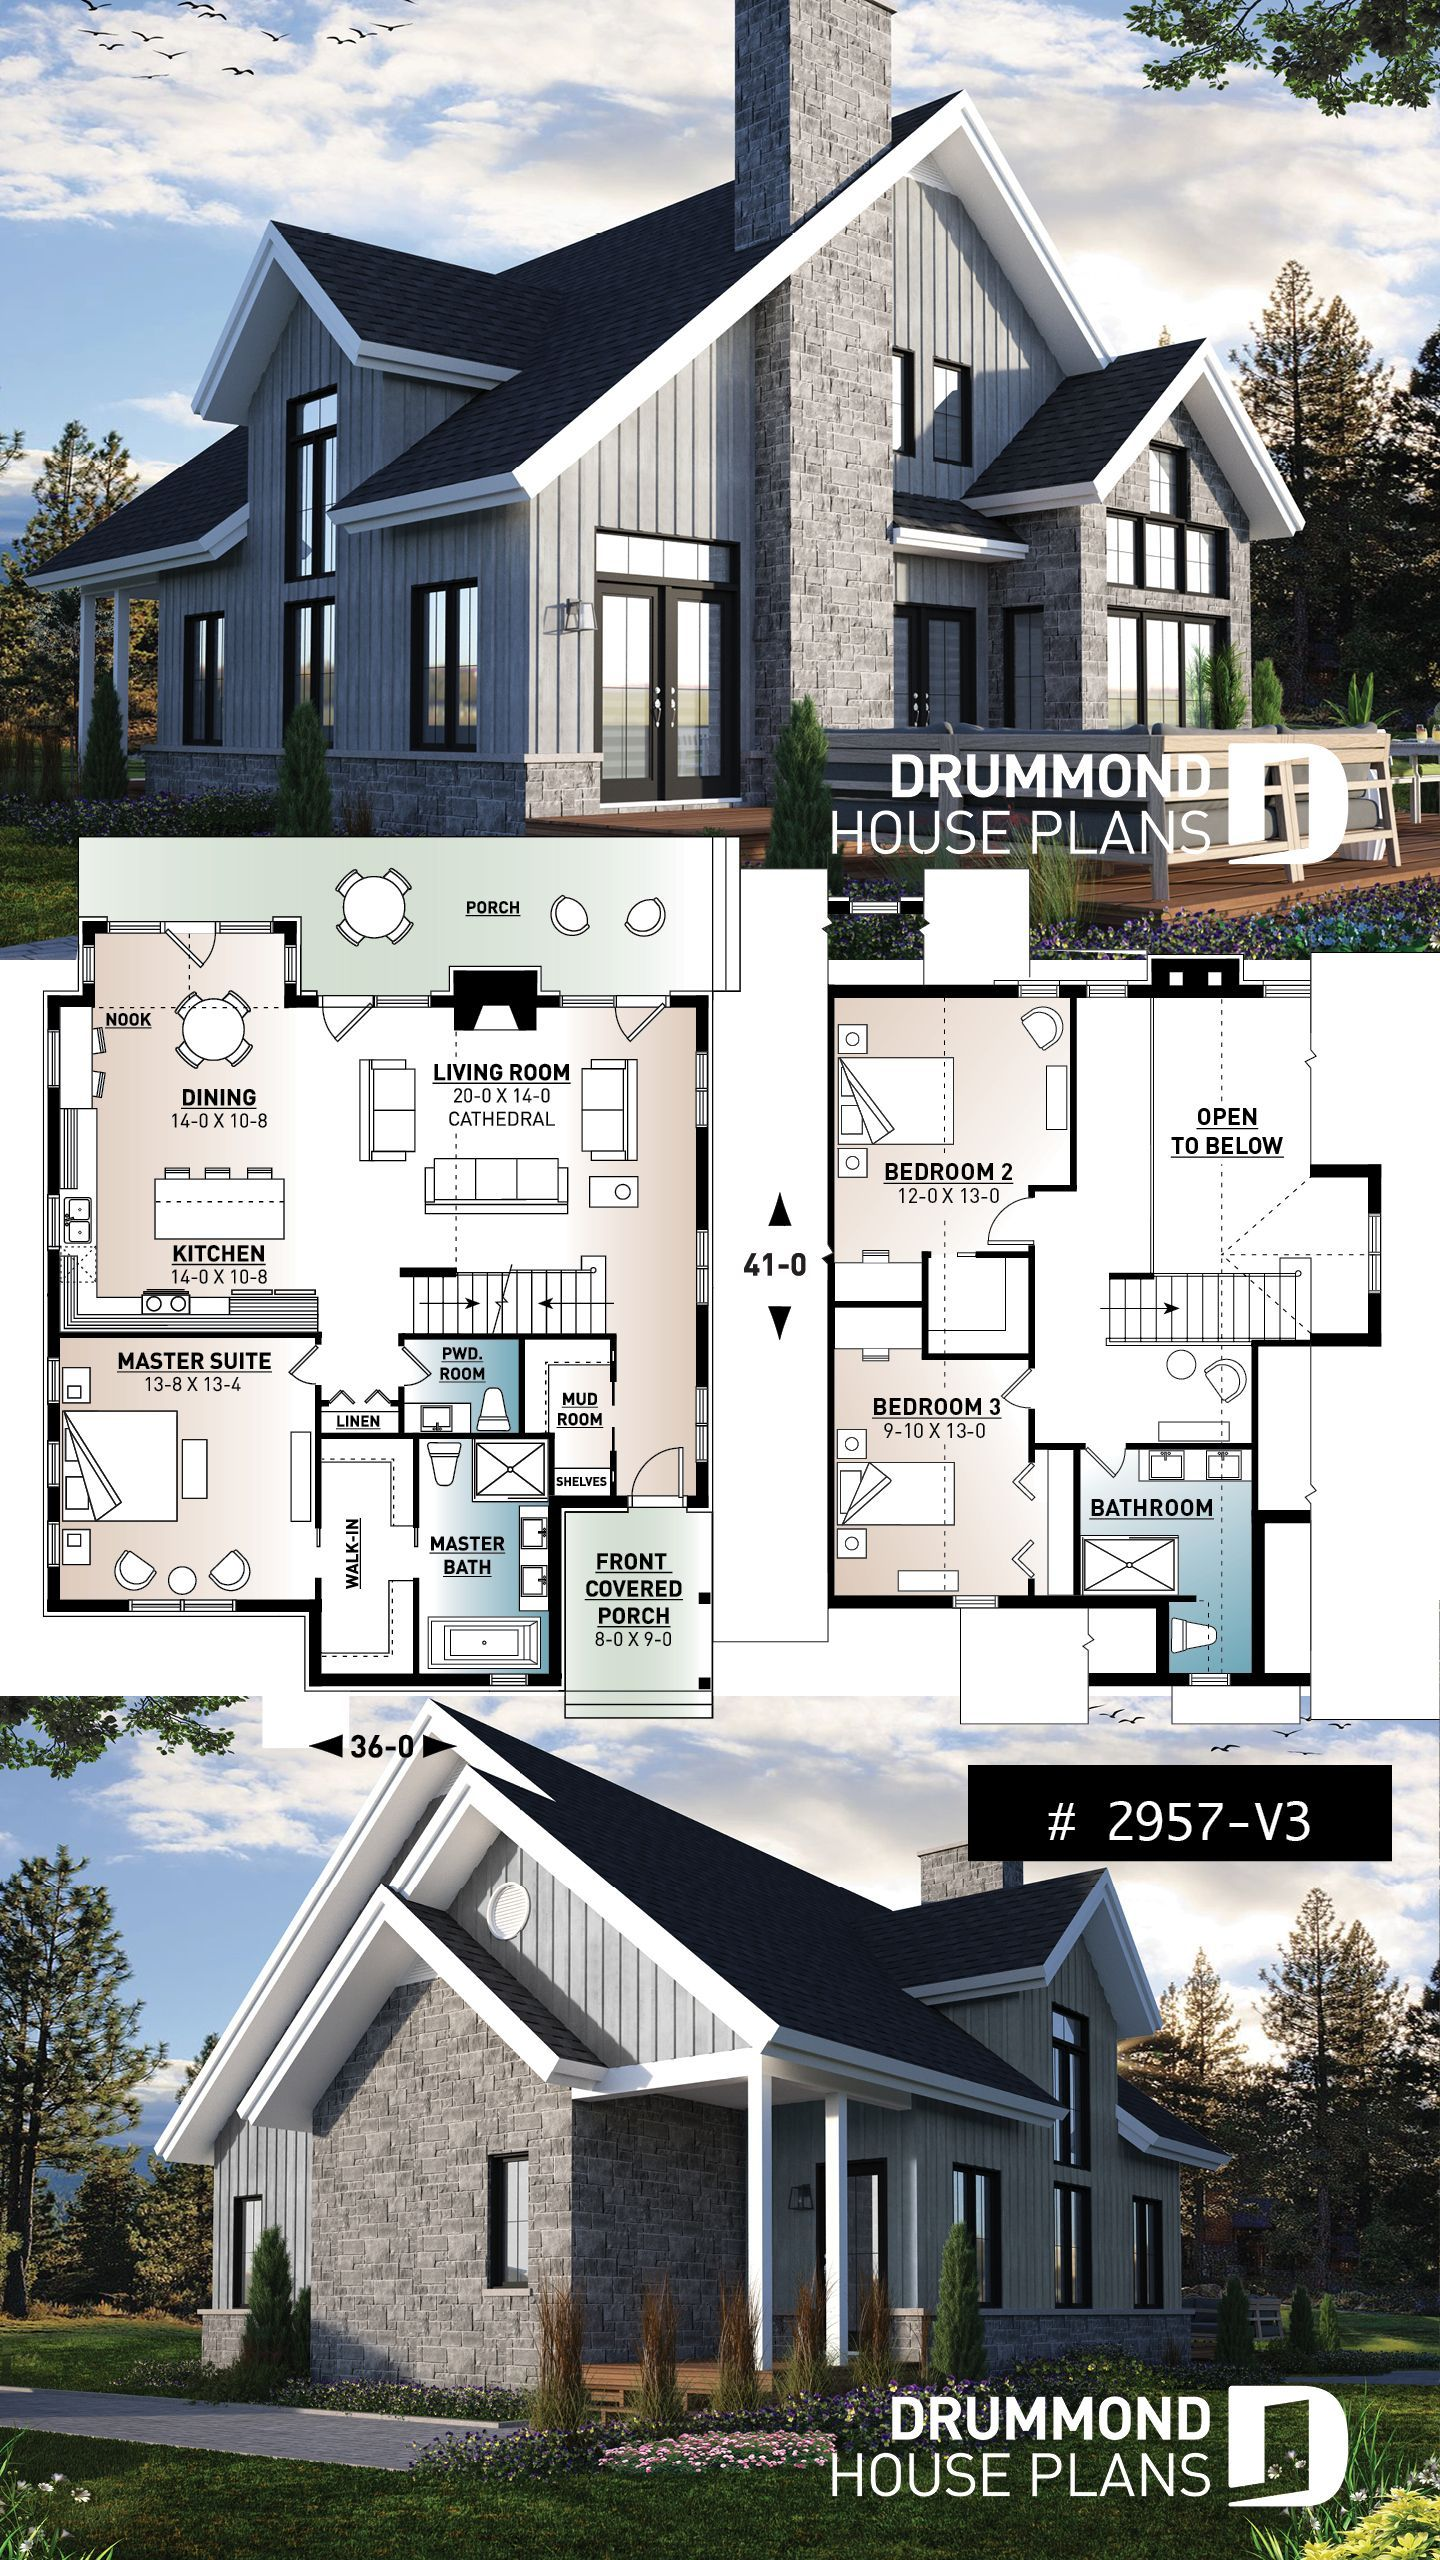 3 Bedroom Mountain Style House Plan With Panoramic View Cathedral Ceiling Master Suite And Modern Farmhouse Floorplan Sims House Plans Farmhouse Floor Plans